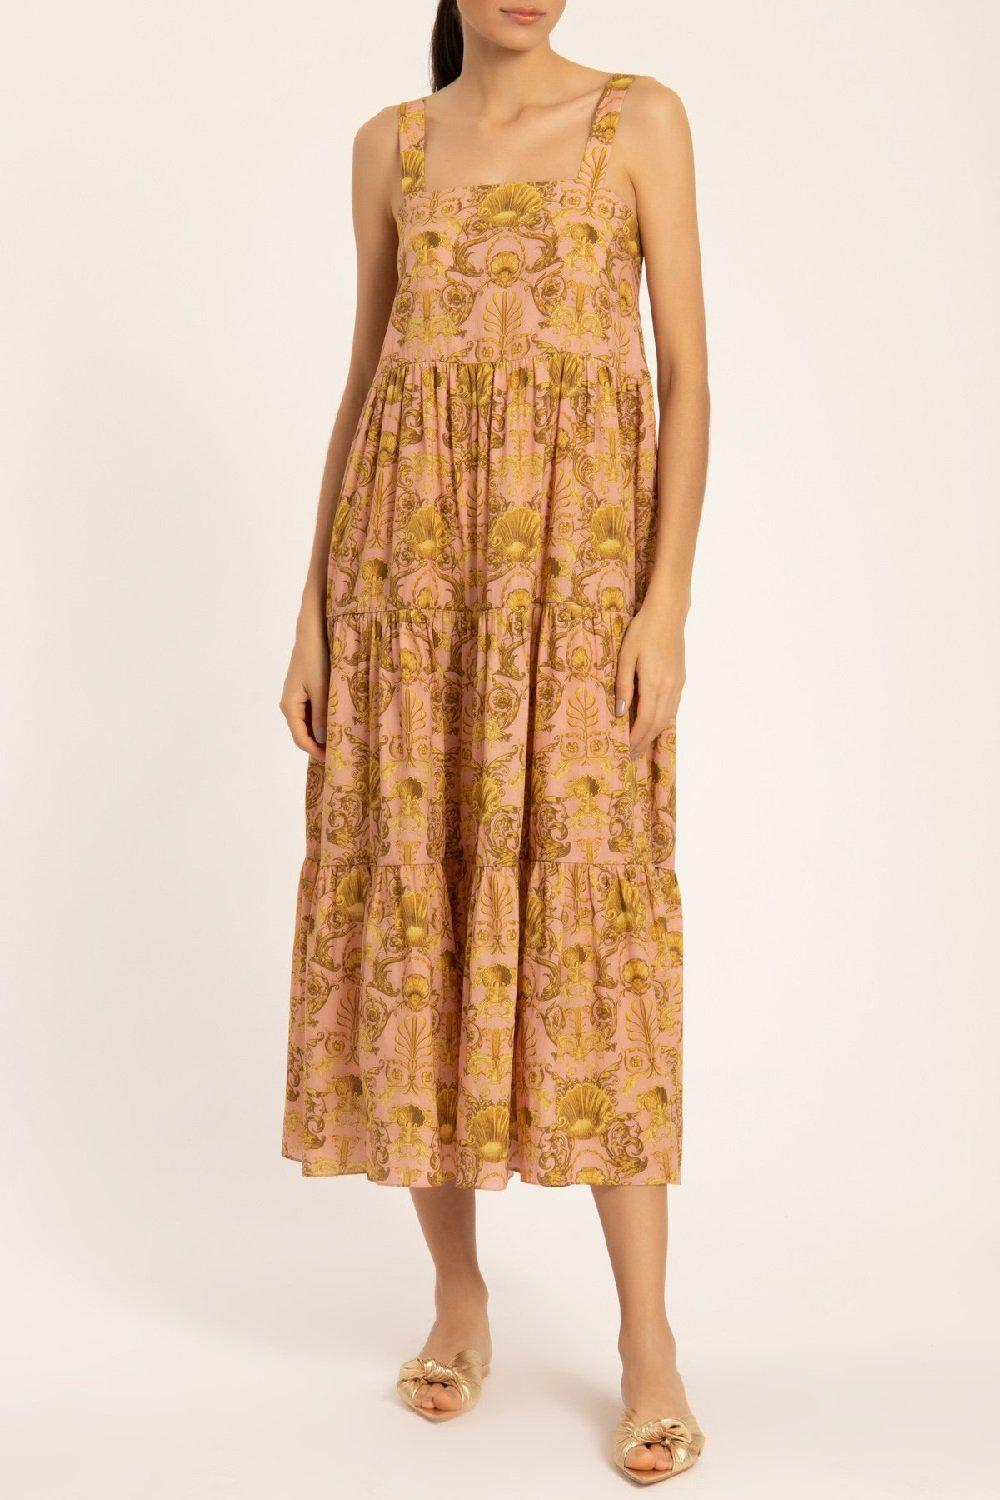 Seashell Frilled Midi Dress With Straps